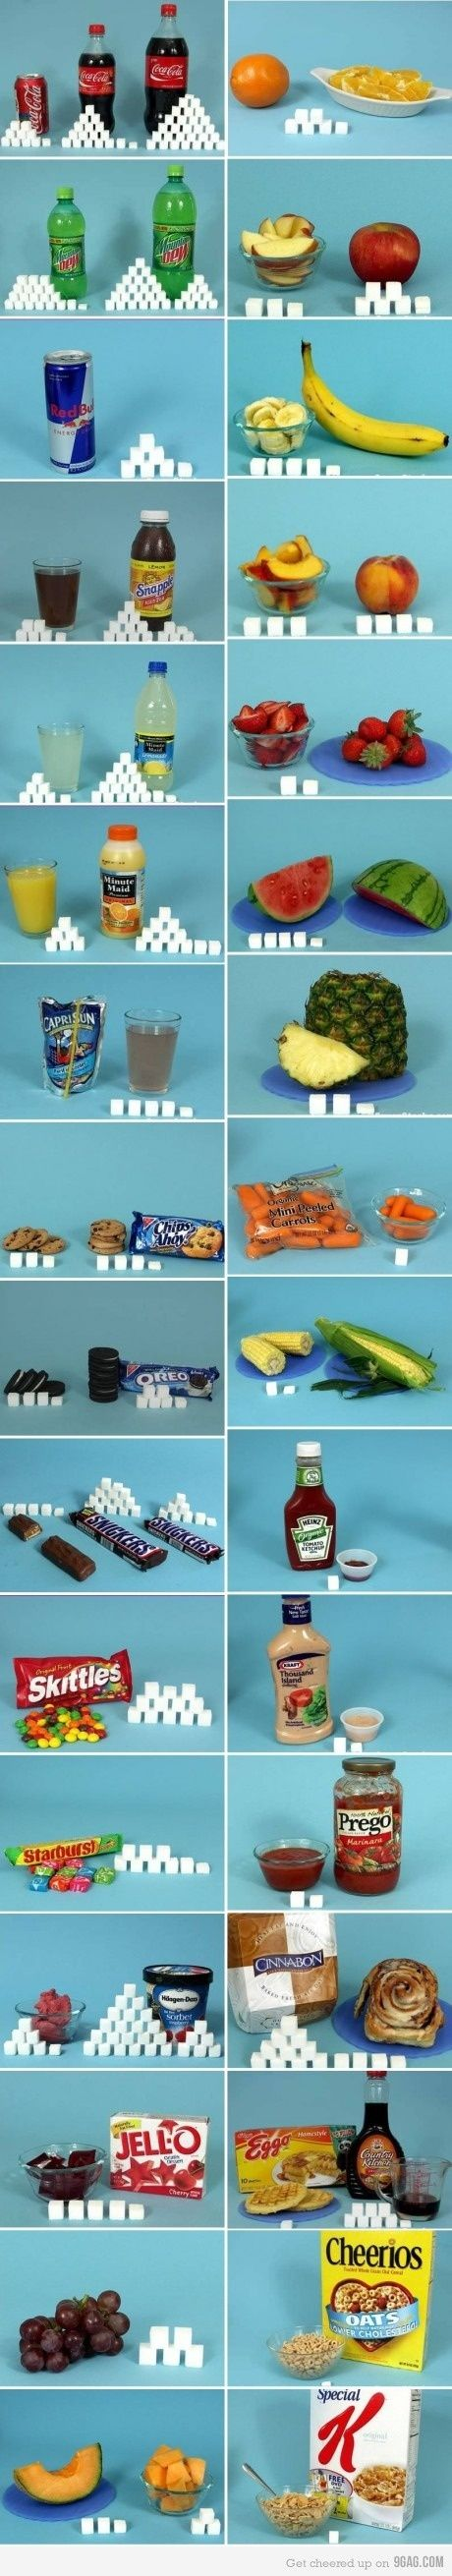 How Much Sugar is in Your Favorite Foods?